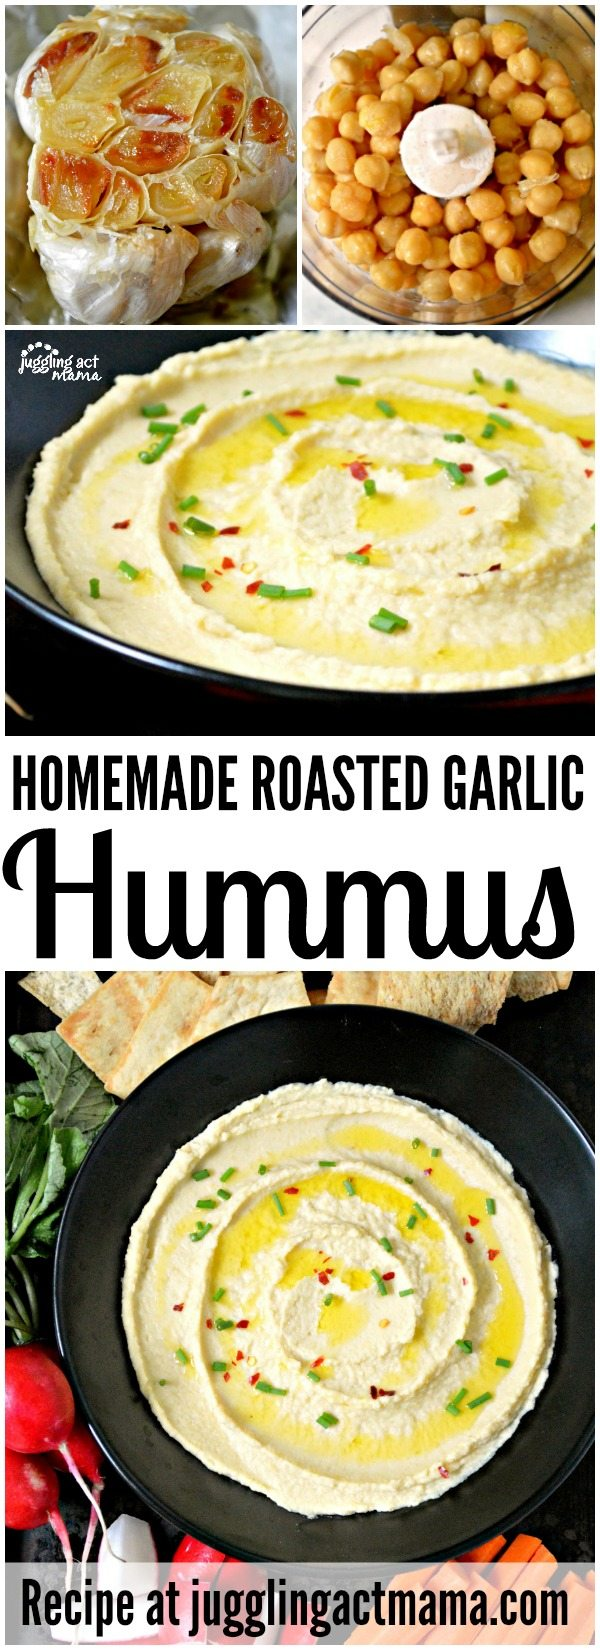 Roasted Garlic Hummus is a delicious and healthy appetizer and snack for parties, or even for school lunches! This recipe couldn't be more simple – you're going to love it!